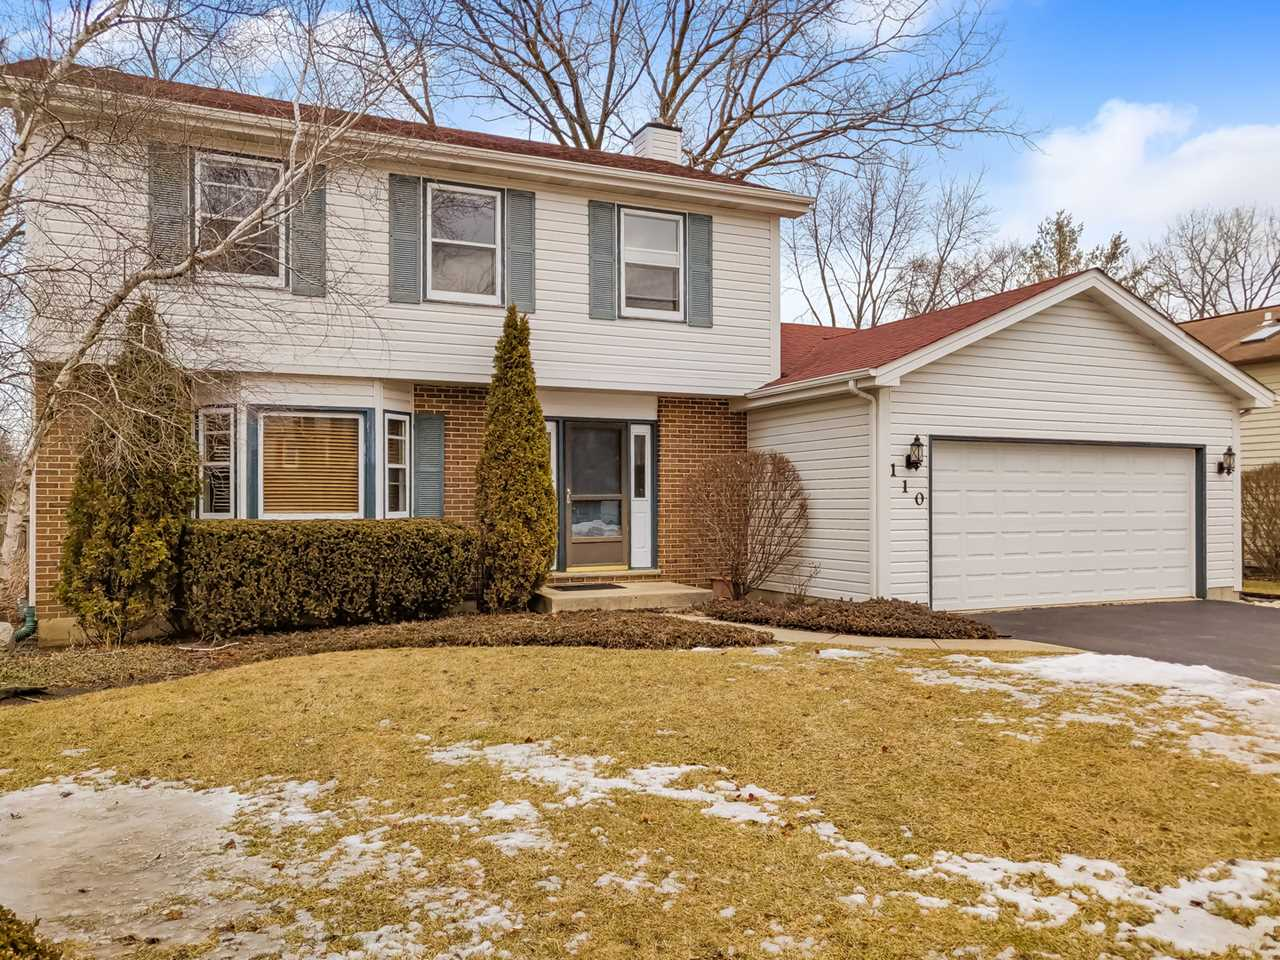 110 Lorraine Dr Lake Zurich, IL 60047 | MLS 10306965 Photo 1